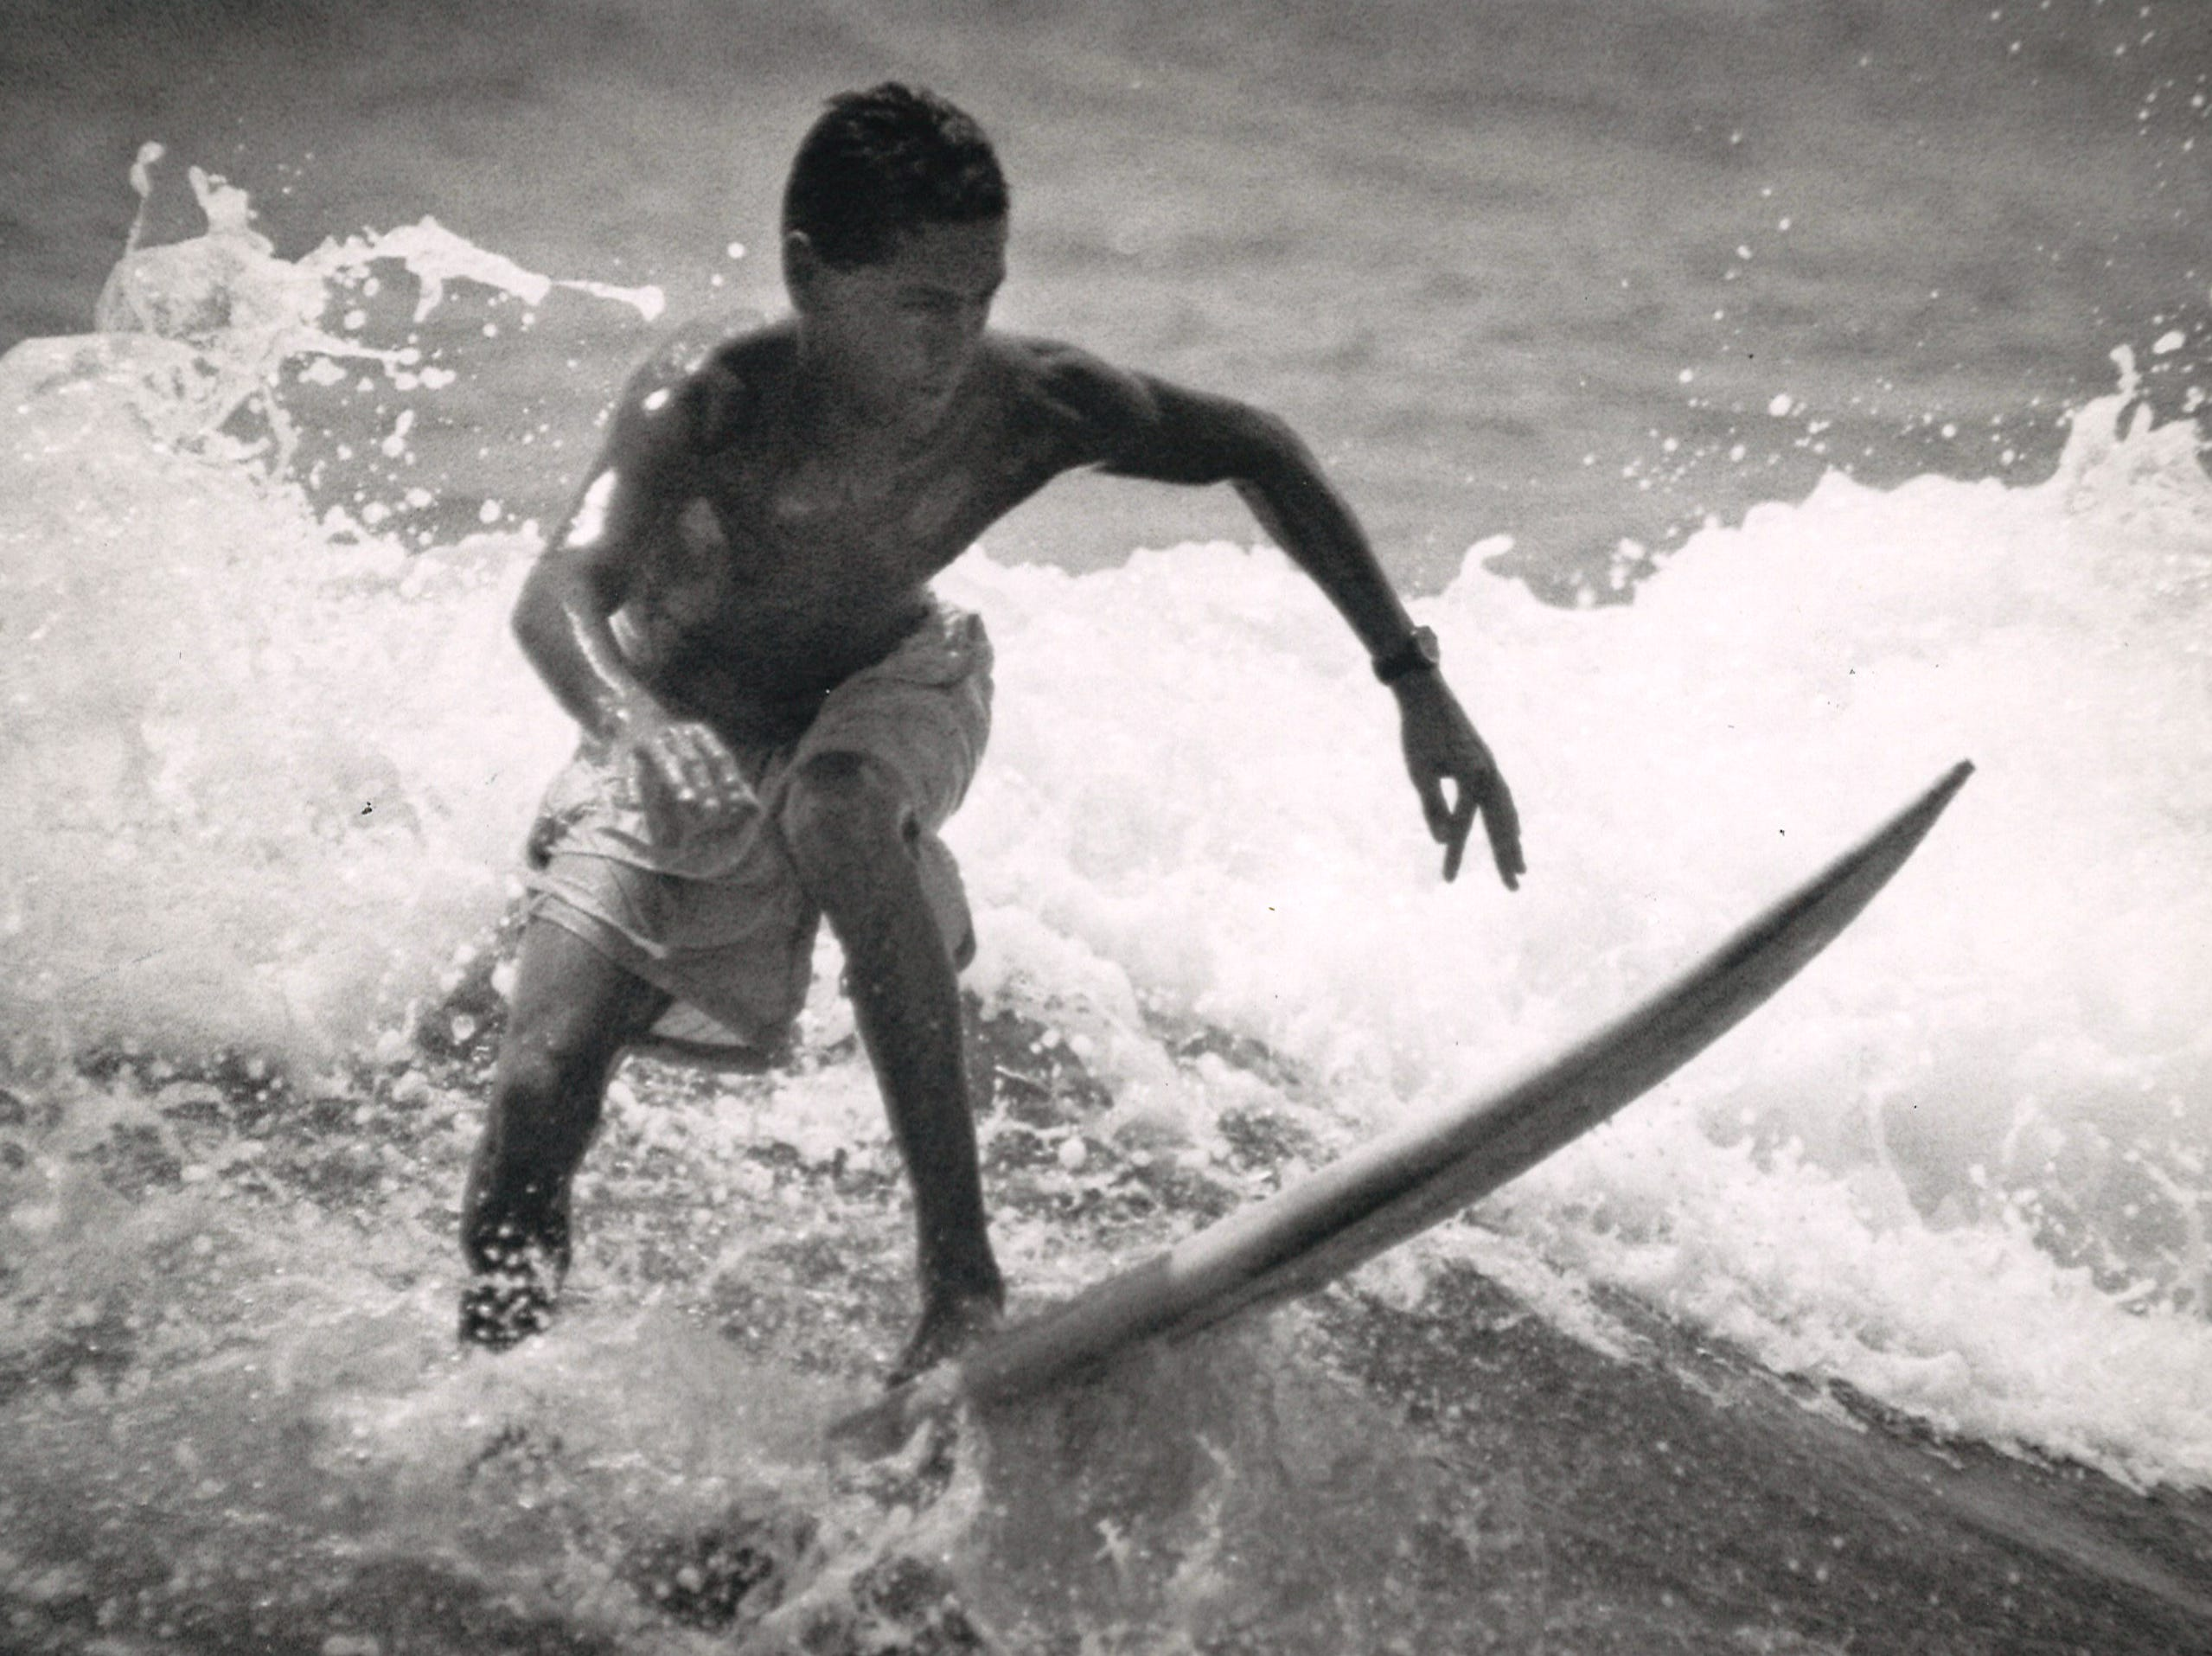 Ramiro Parron, 22, surfs at Mustang Island in Corpus Christi on May 7, 1992 before heading to work.